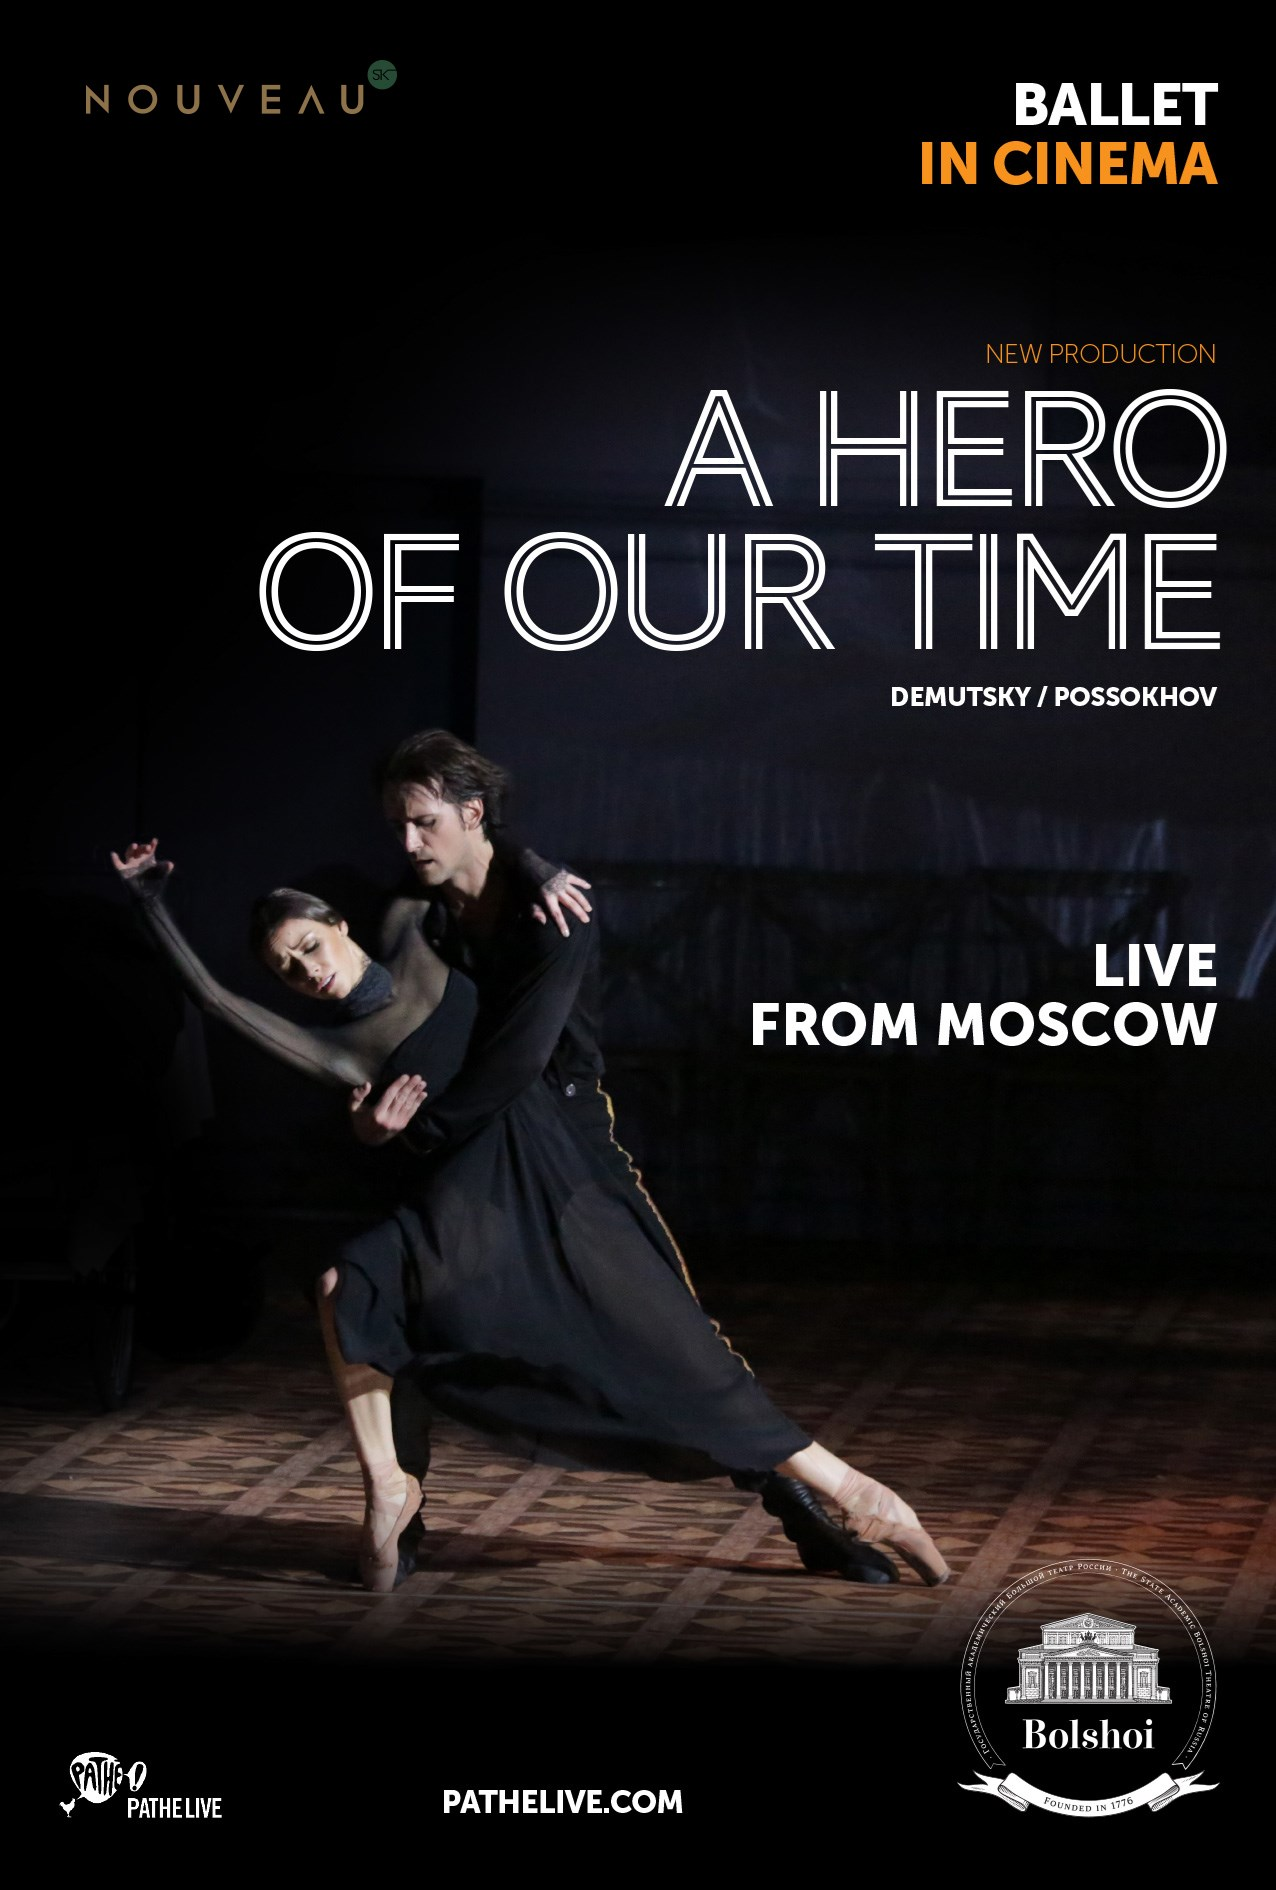 HERO OF OUR TIME, A (BOLSHOI) Poster